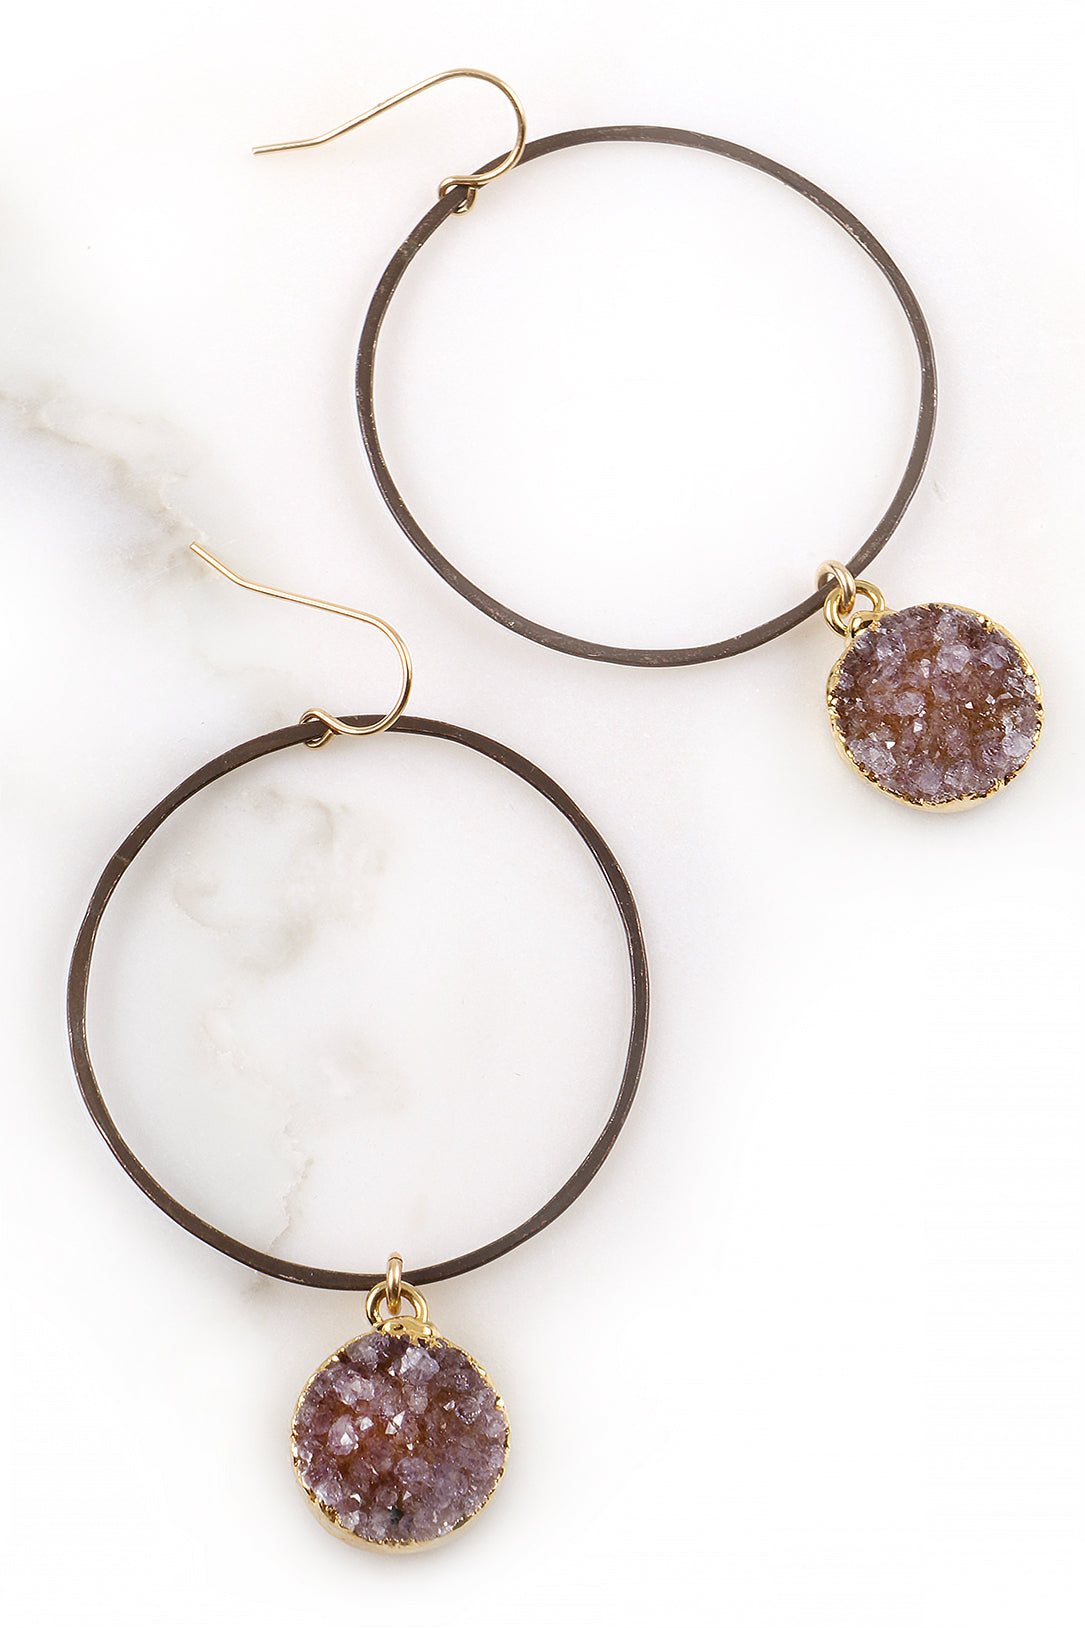 Hammered Gunmetal Hoop Earrings with Round Druzy